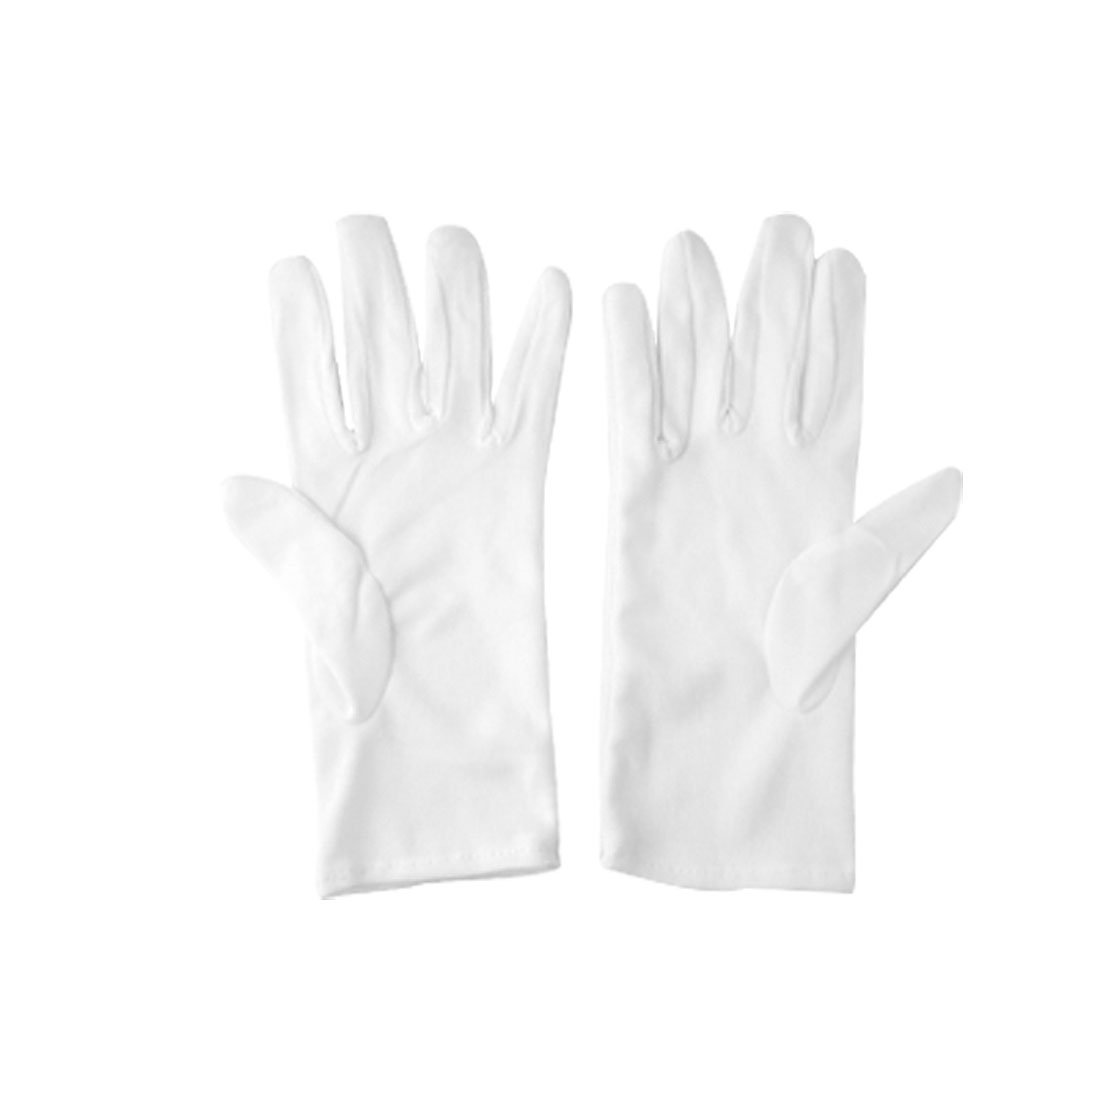 Driving gloves wholesale - Ladies White Cotton Thin Full Fingers Work Driving Gloves S 2 Pairs China Mainland